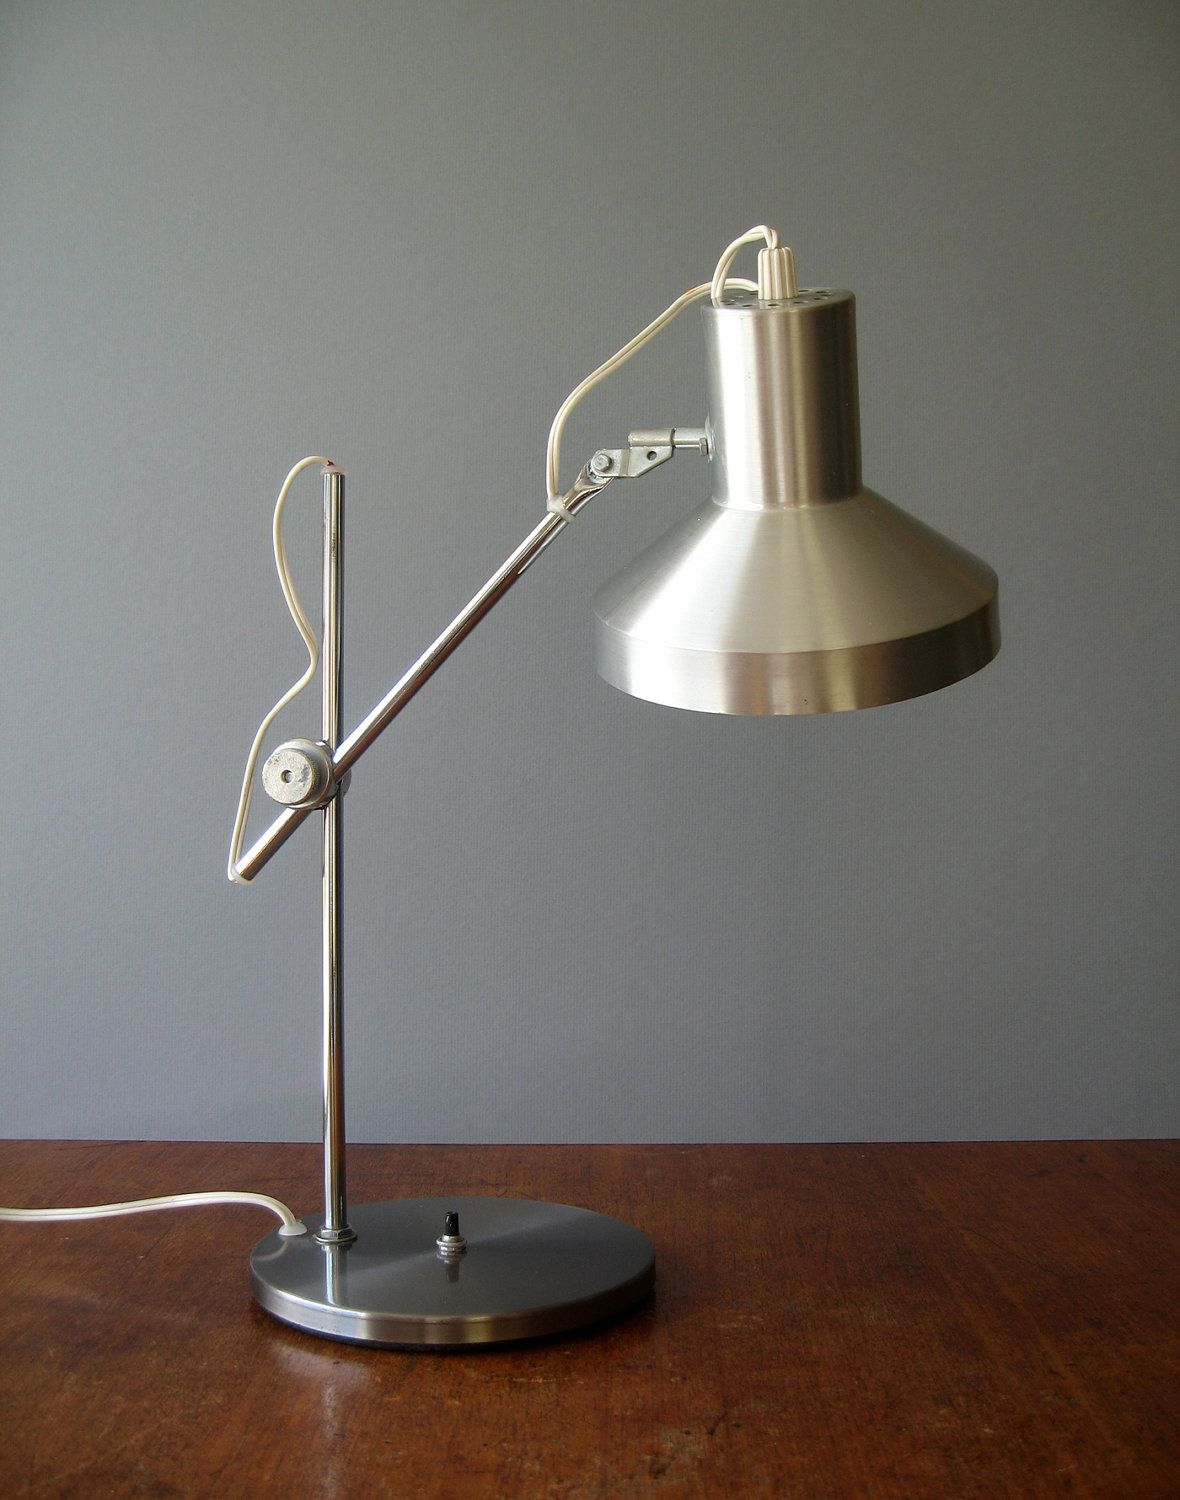 Mid Century Desk Lamp Danish Modern Industrial 54 00 Via Etsy I Wonder If It Snap Crackles And Pops Lamp Desk Lamp Mid Century Desk